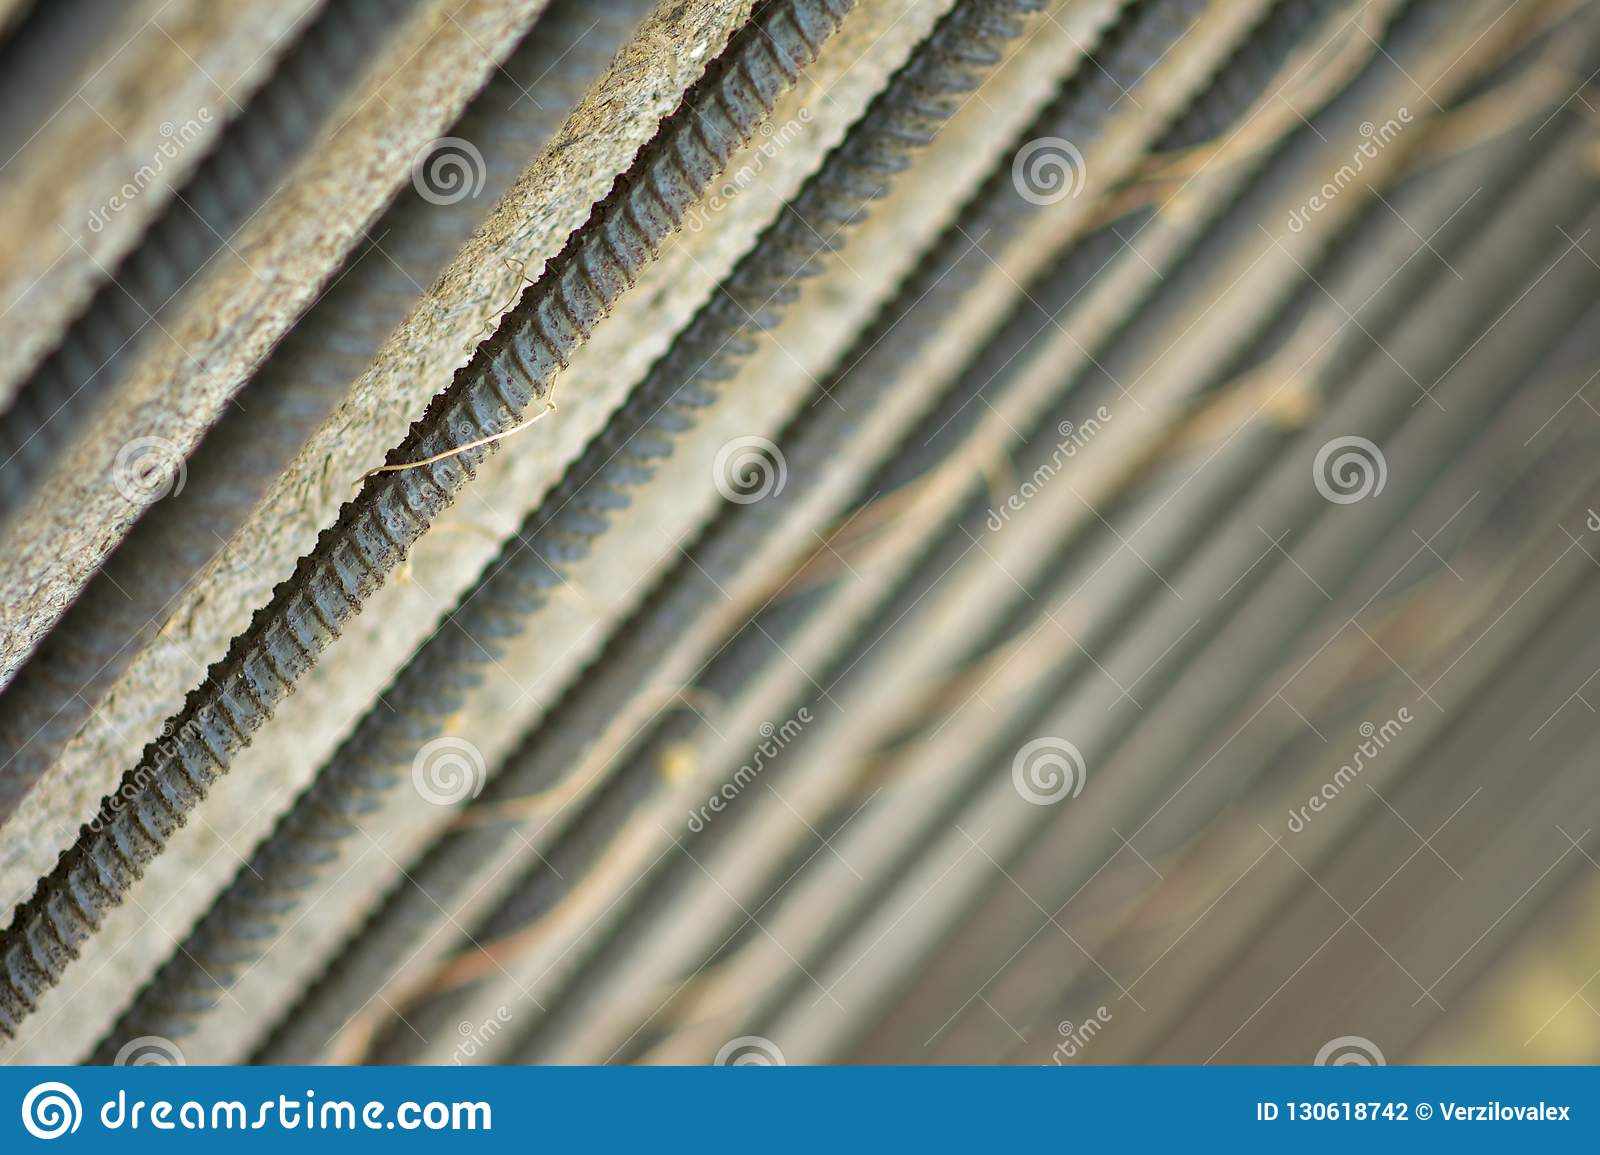 Metal bars background or texture